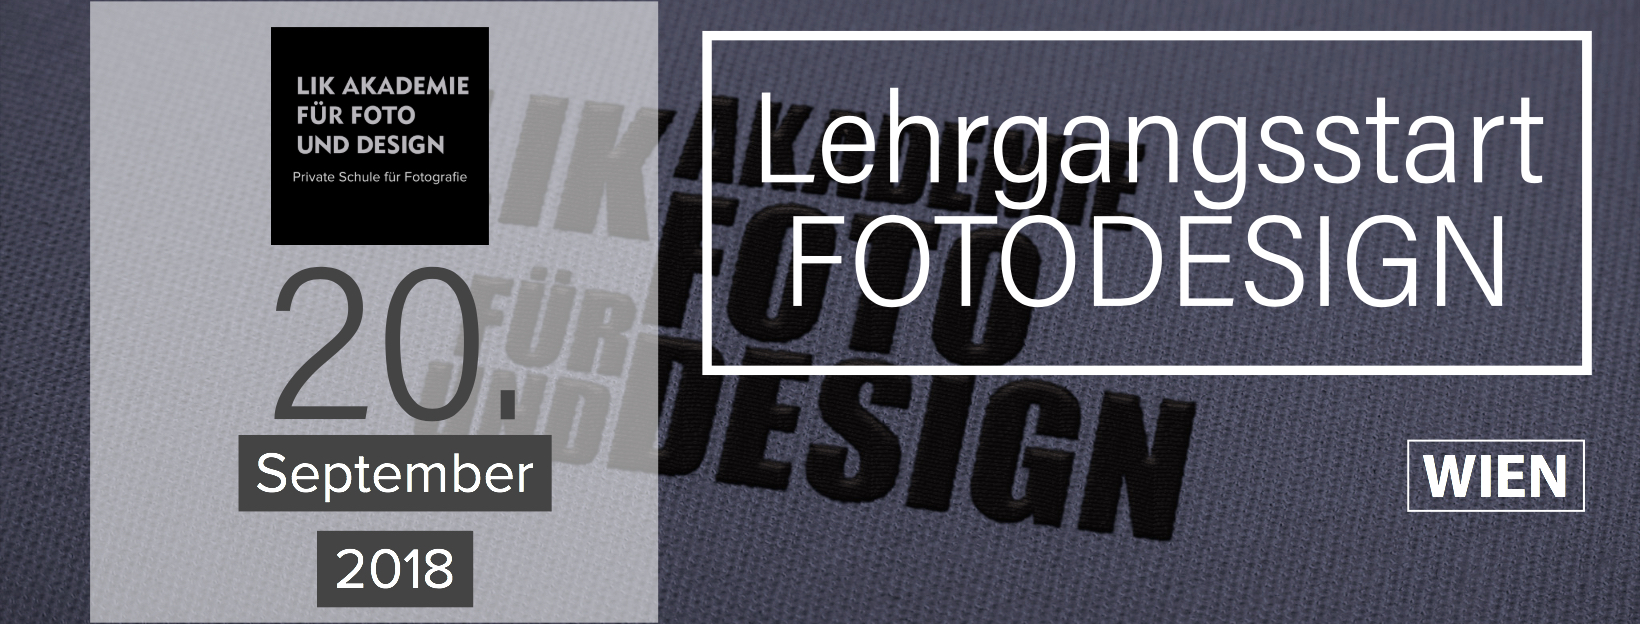 FOTODESIGN.jpg